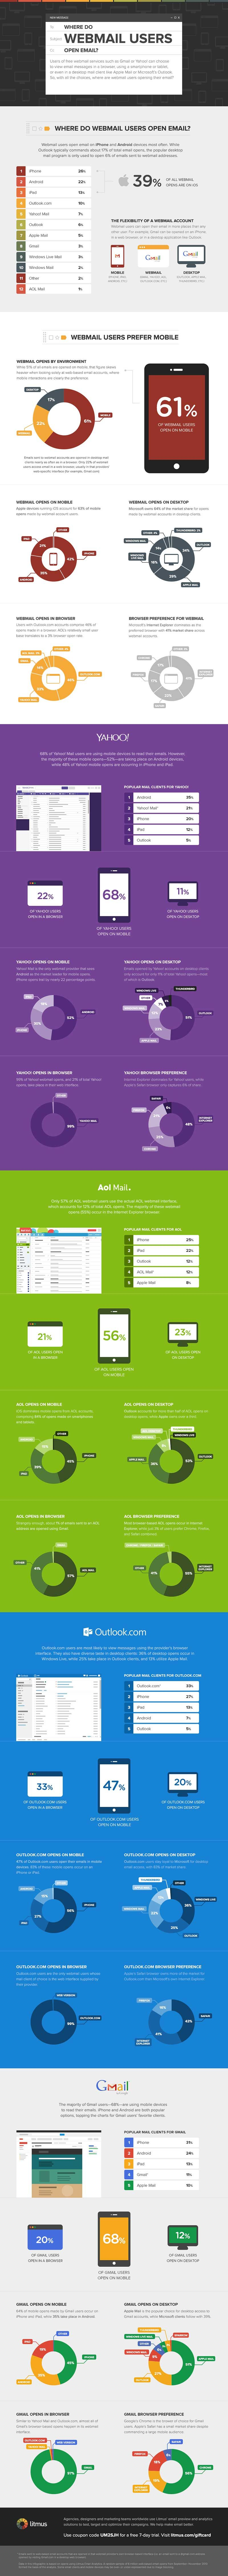 #Infographic: Where Do Webmail Users Open Email? | by @Holly Elkins Elkins Allen via @MobileMW #mobile #marketing | Kudos on the excellent stats AND the clean design!